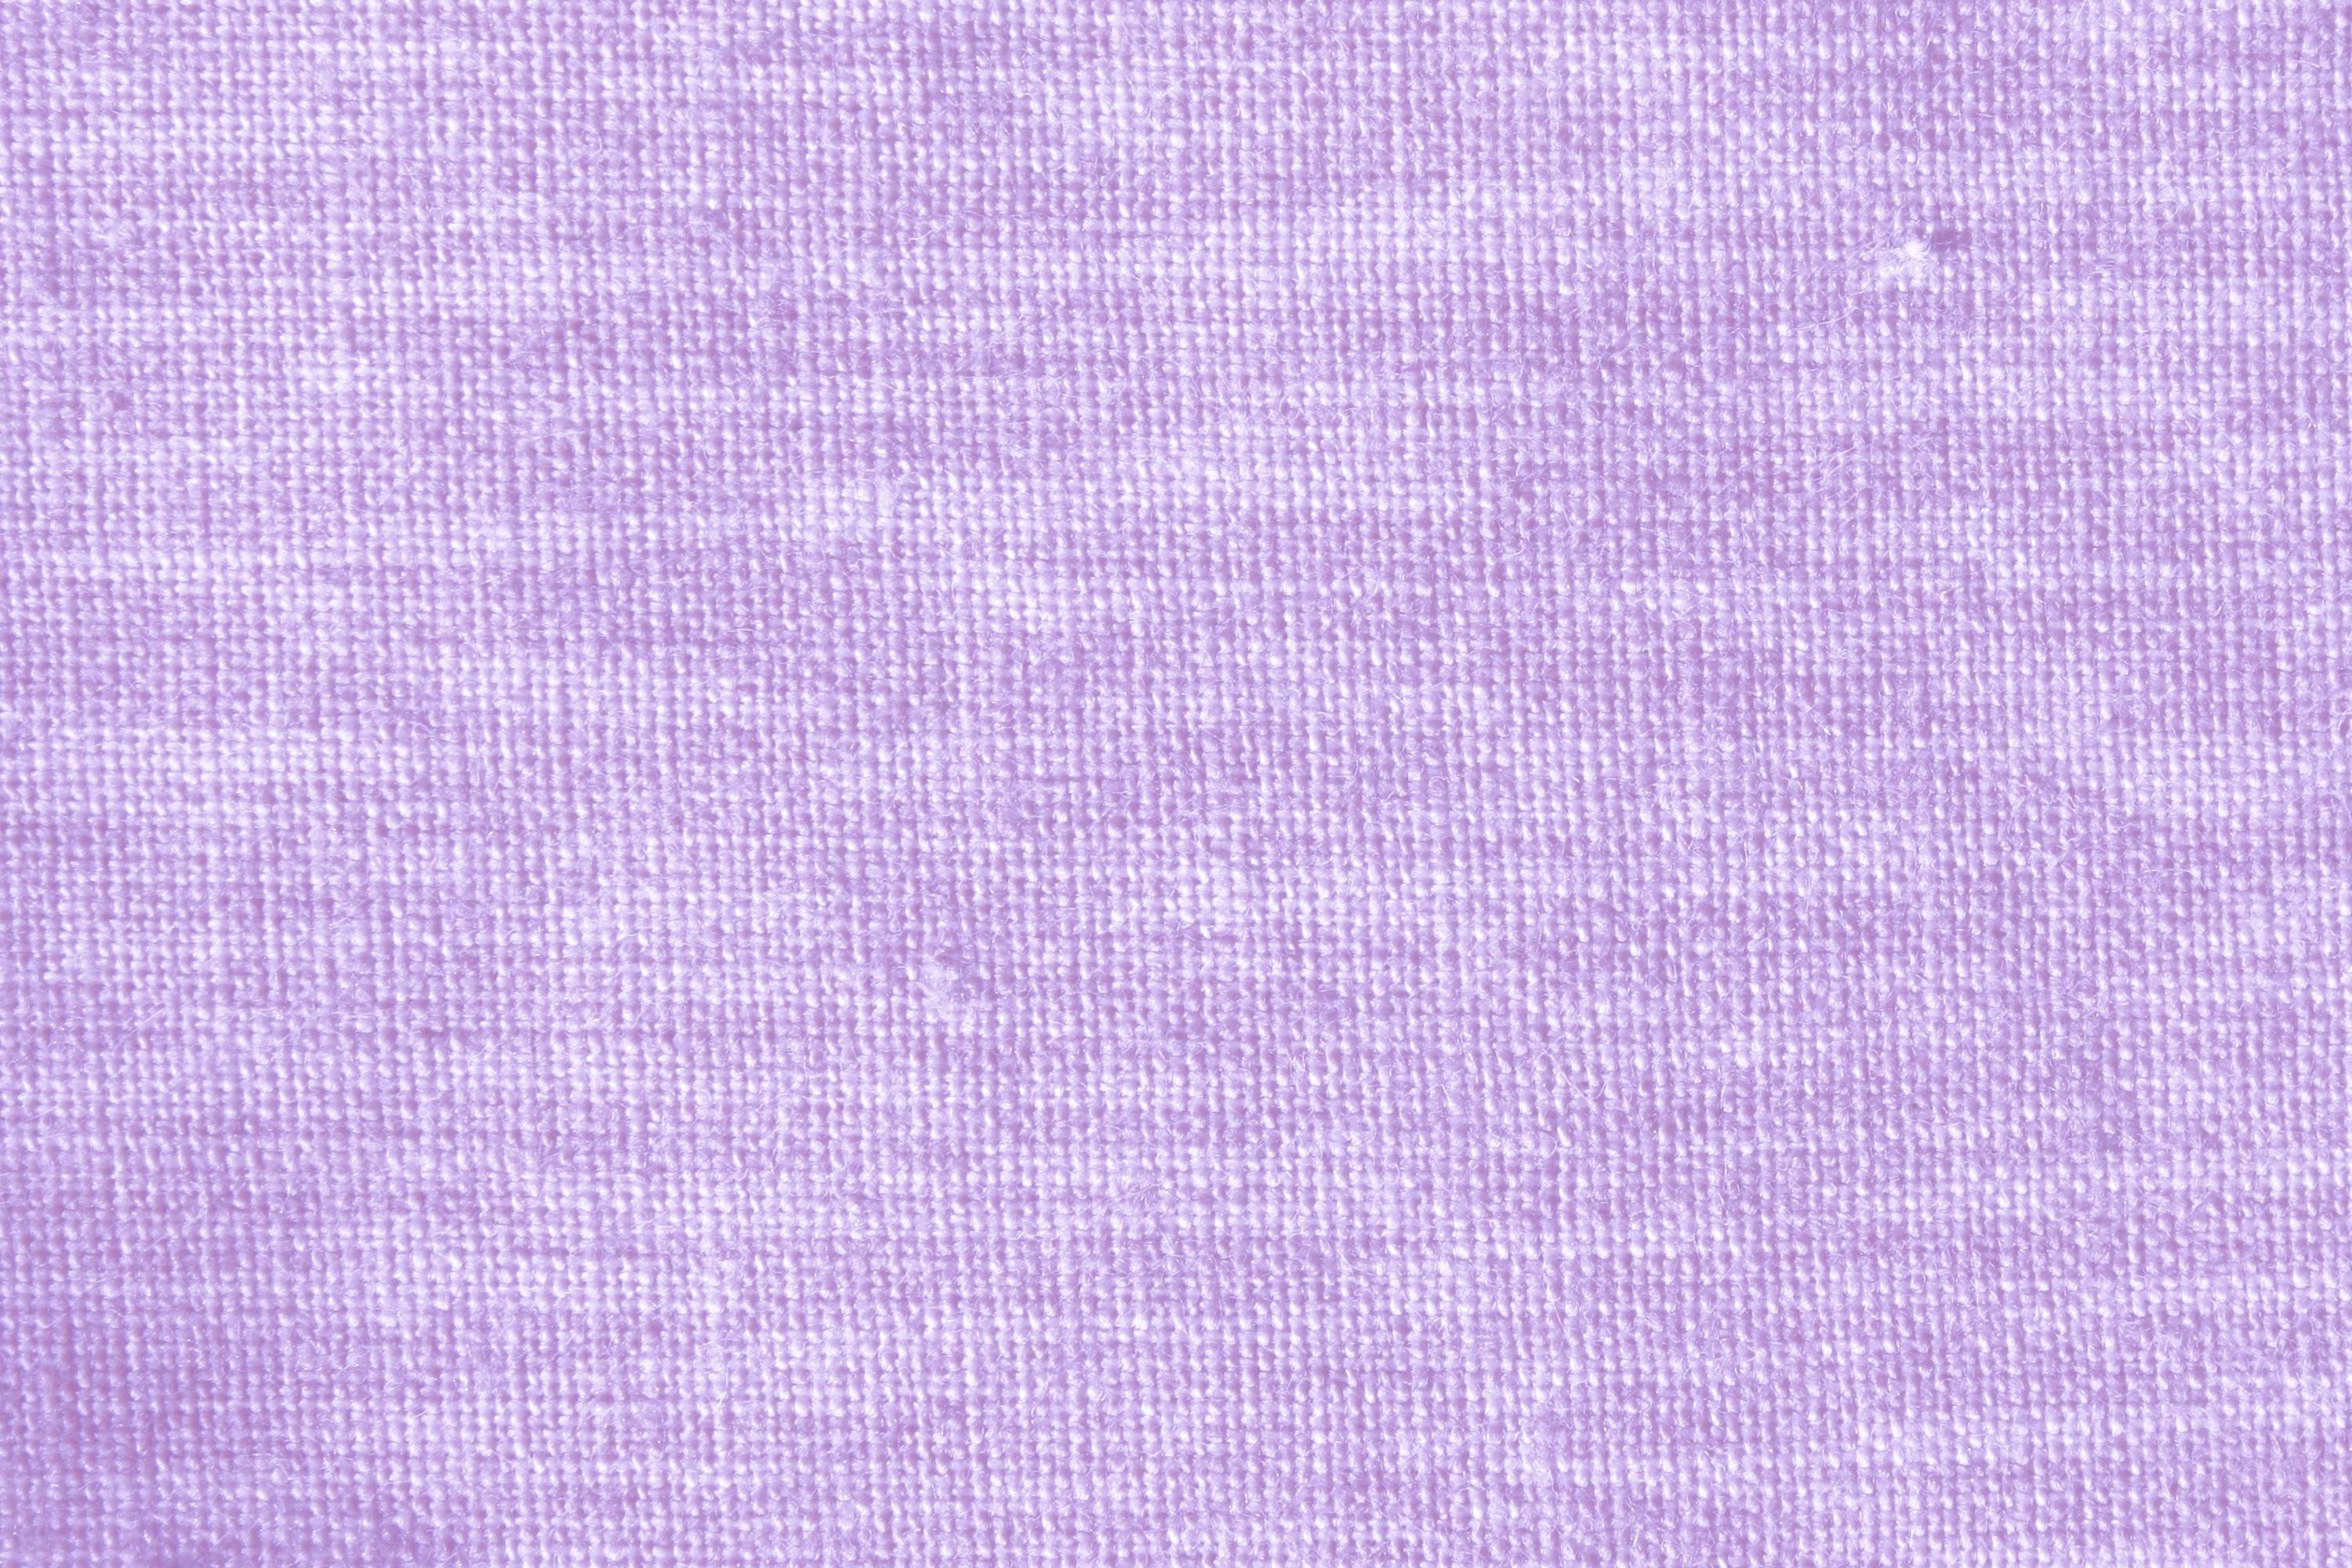 3000x2000 Wallpapers For > Light Purple Tumblr Backgrounds